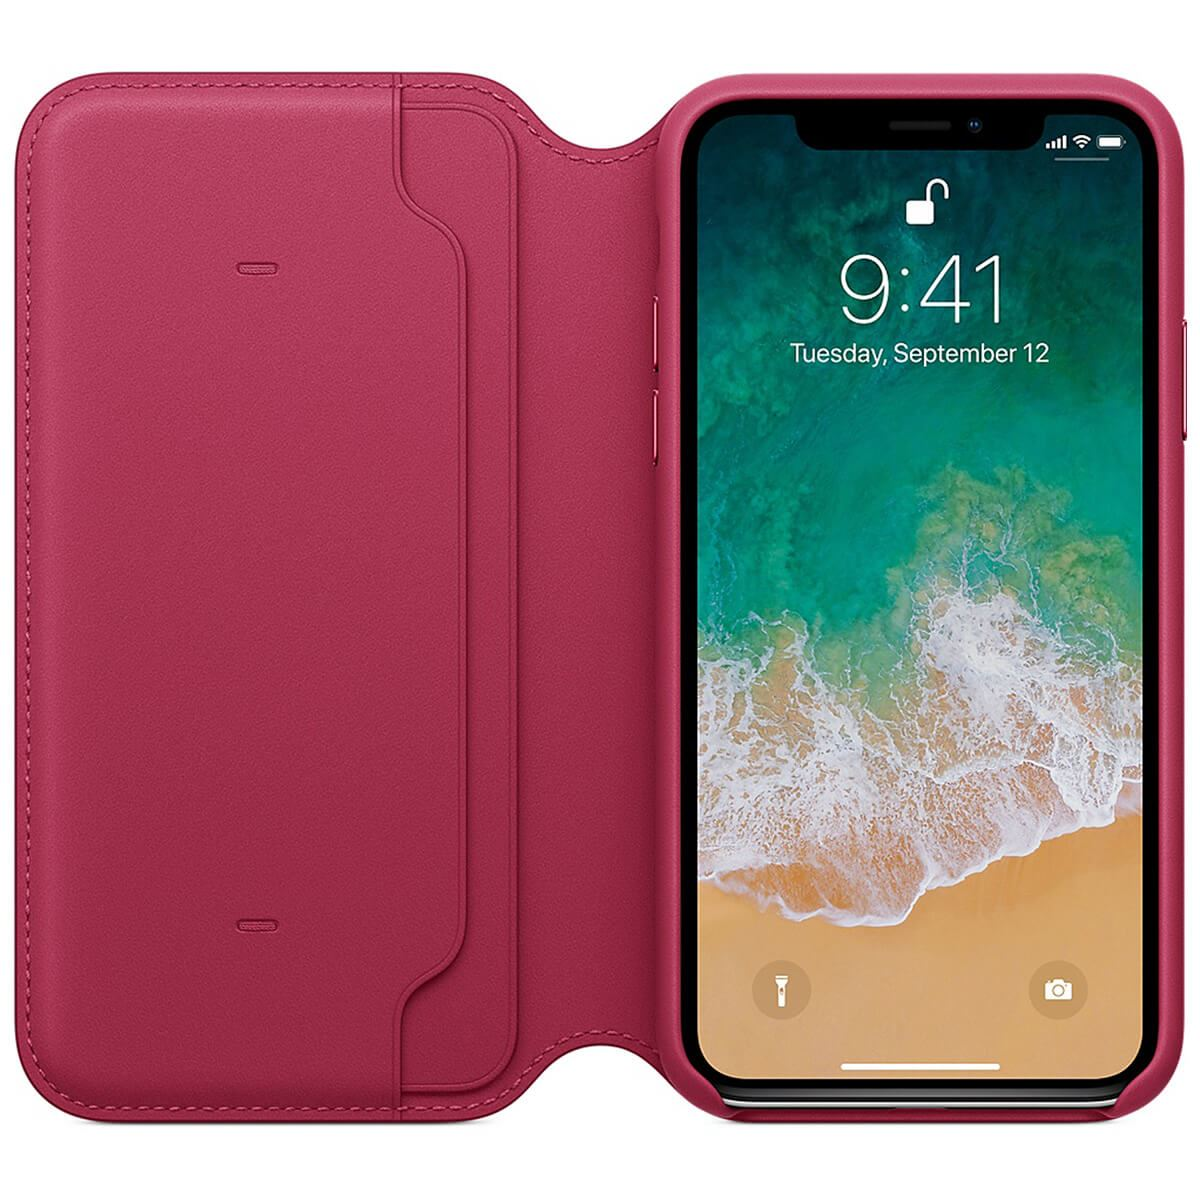 Genuine-Leather-Folio-Flip-Wallet-Case-Cover-For-Apple-iPhone-X-8-7-6S-6-Plus thumbnail 47